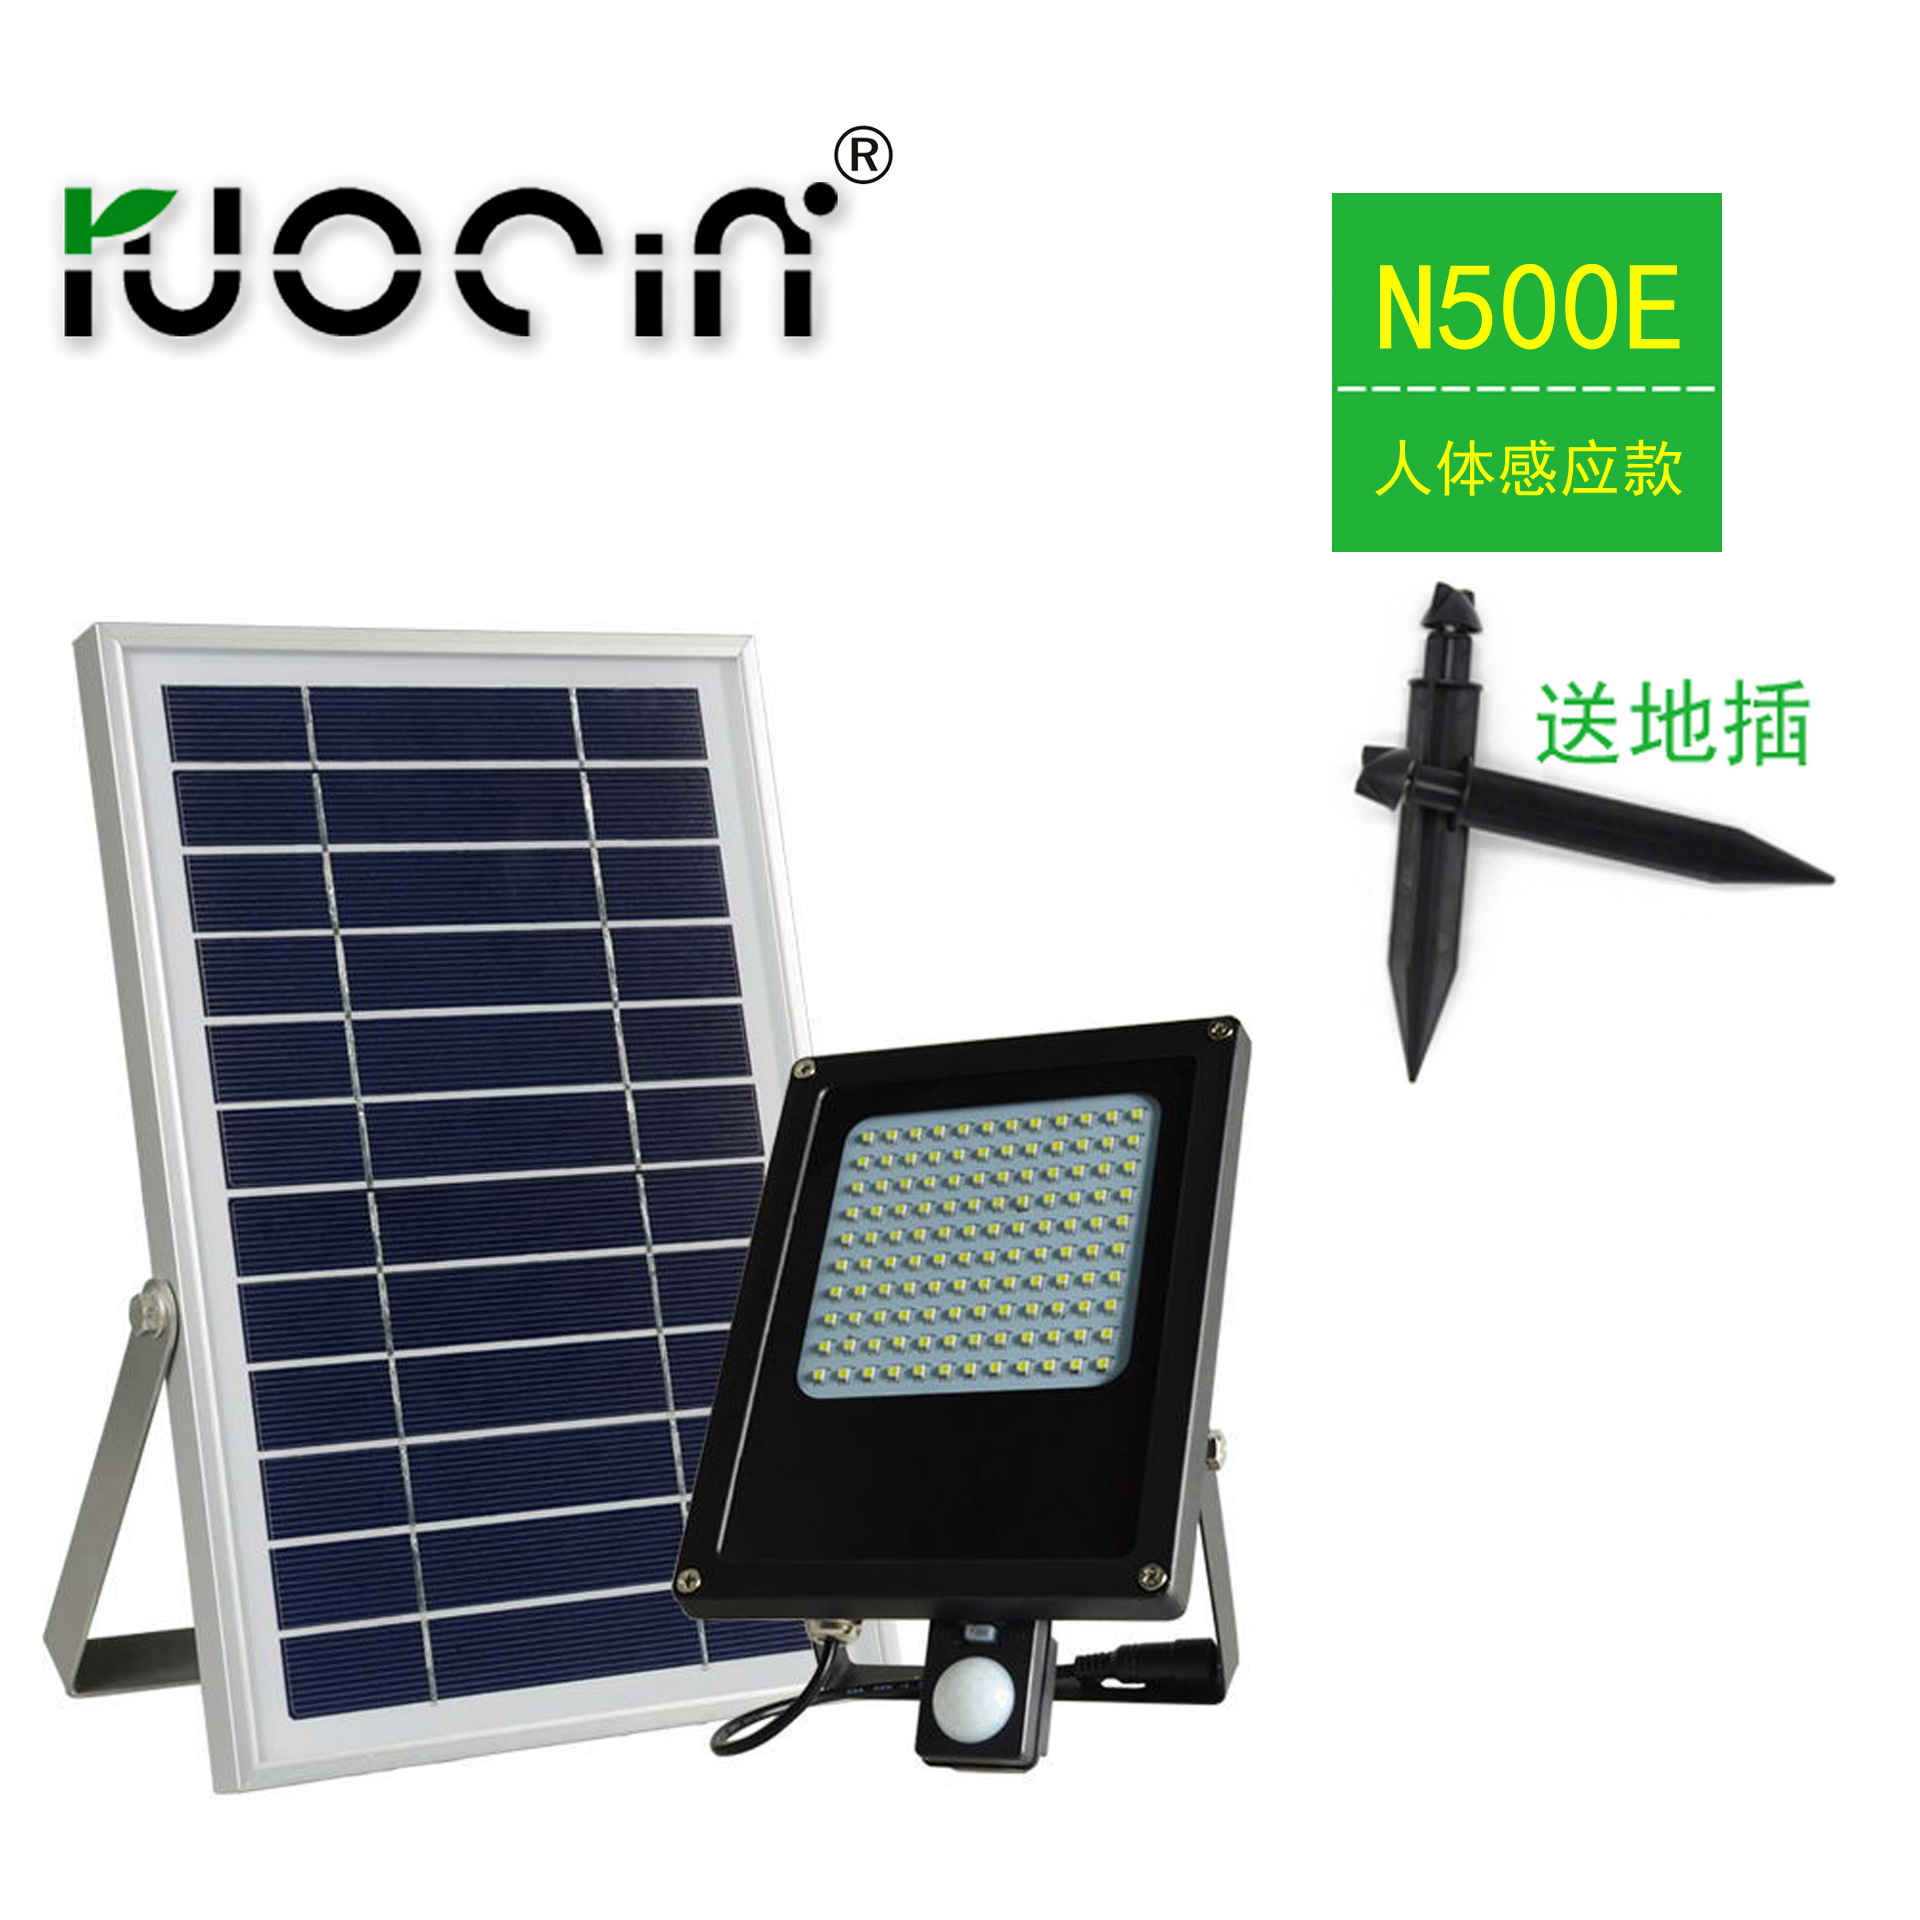 Rural human body induction lamp 15 wled solar street lamps light highlight household solar floodlight rural household endowment and poverty